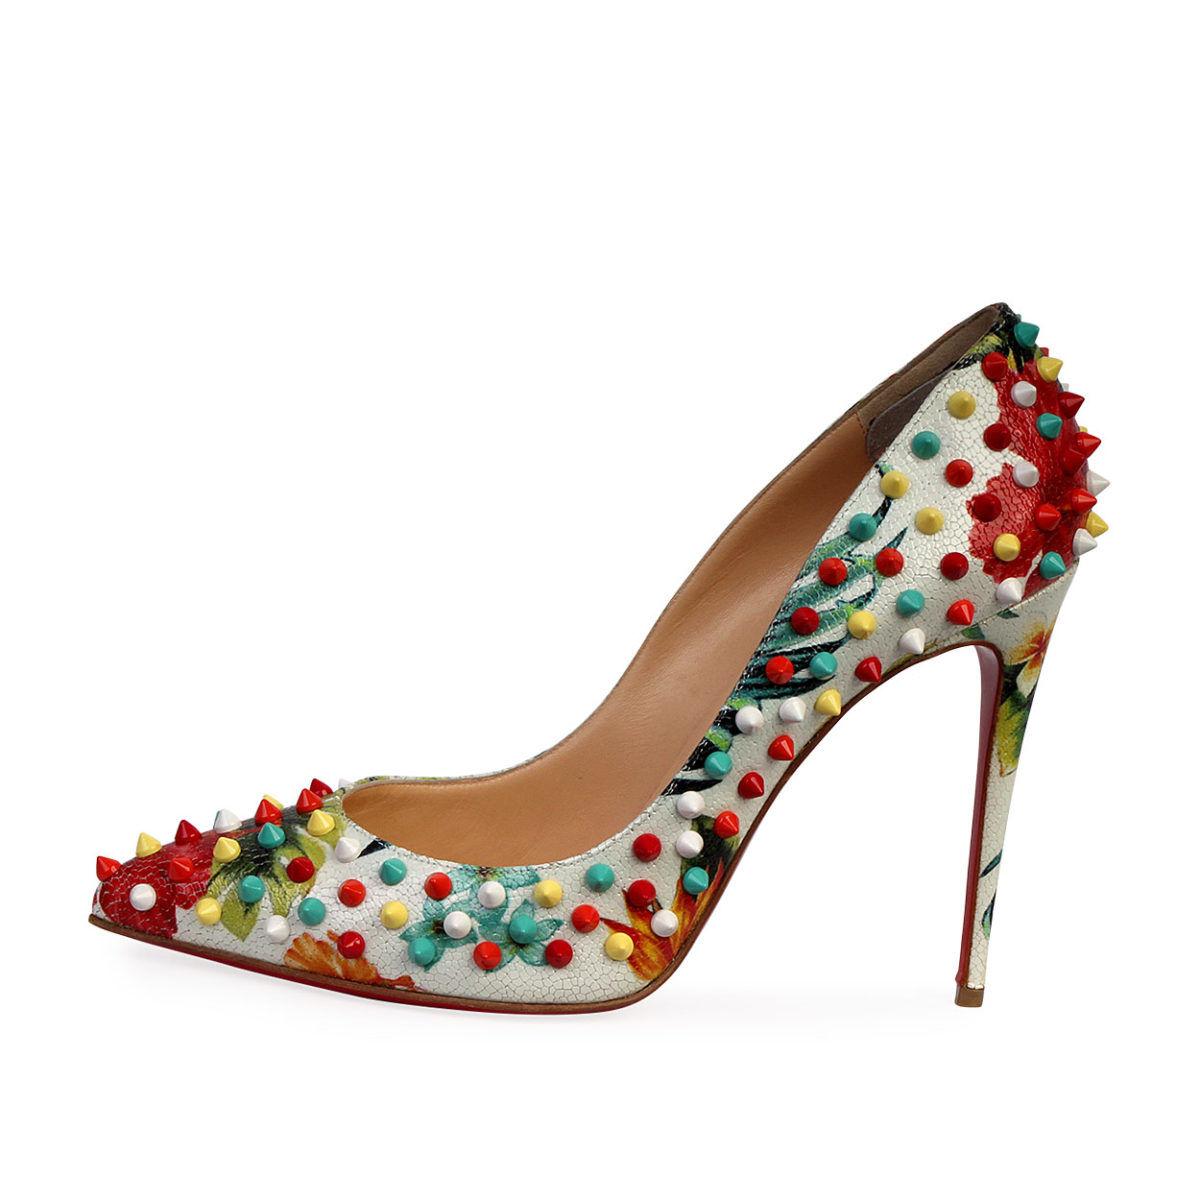 promo code a58d8 8e6ca CHRISTIAN LOUBOUTIN Crackled Hawaiian Follies Spikes 120 Pumps White/Multi  - S: 40 (6.5)